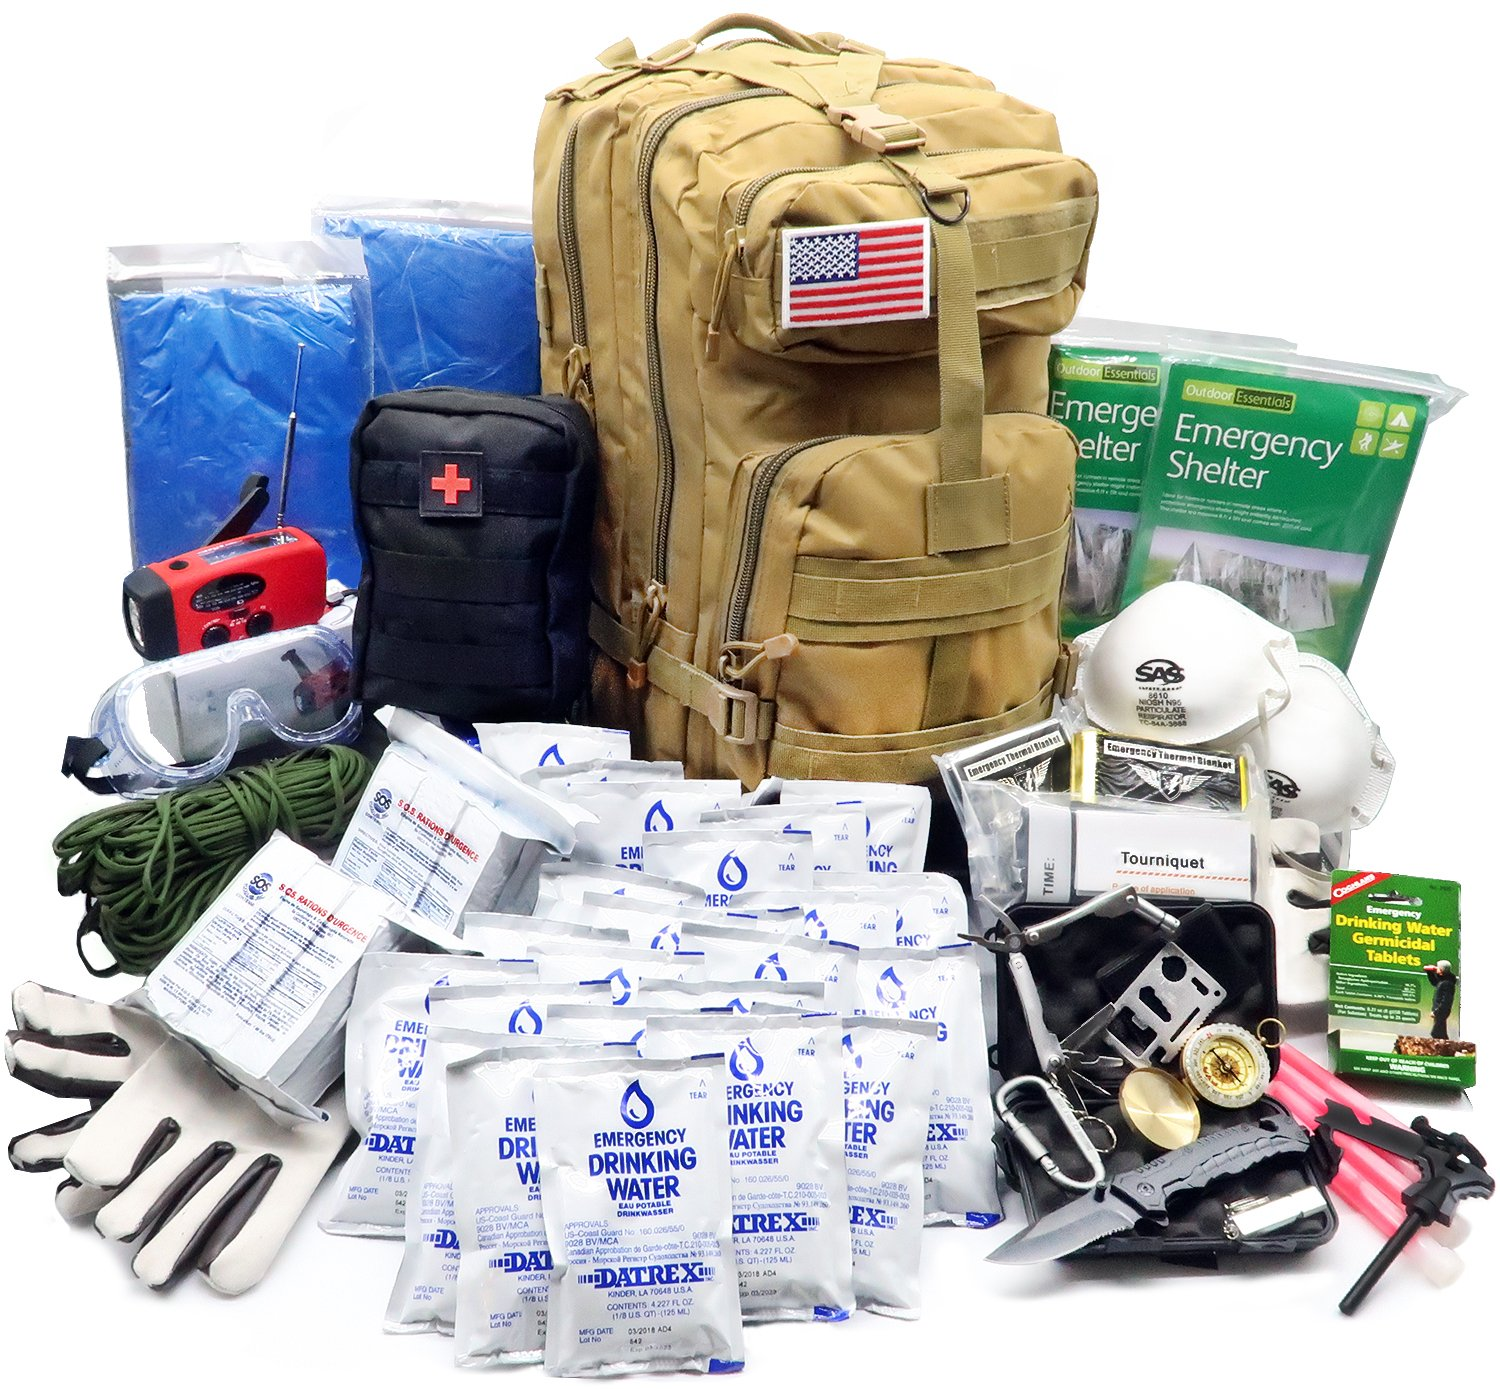 EVERLIT Earthquake Emergency Kits Survival Kit 72 Hrs 2 Person Bug Out Bag for Hurricanes, Floods, Tsunami, Other Disasters,Include Food Water, Gear, Hand-Crank Charger and More